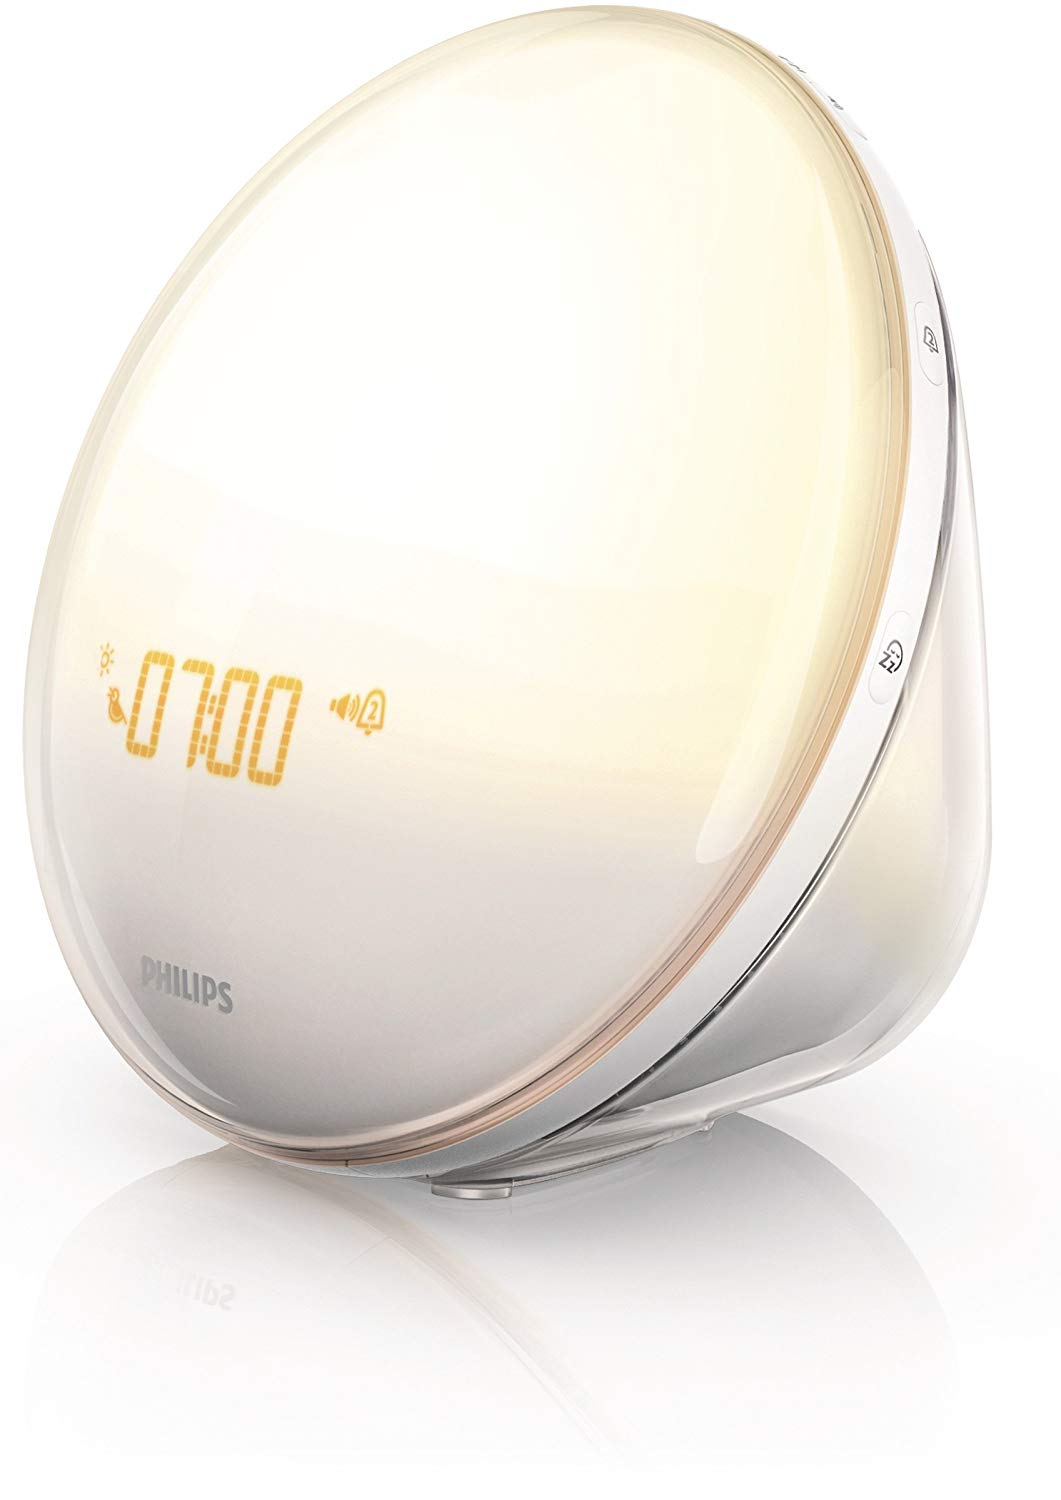 Philips Wake Up Light Review by www.snoremagazine.com